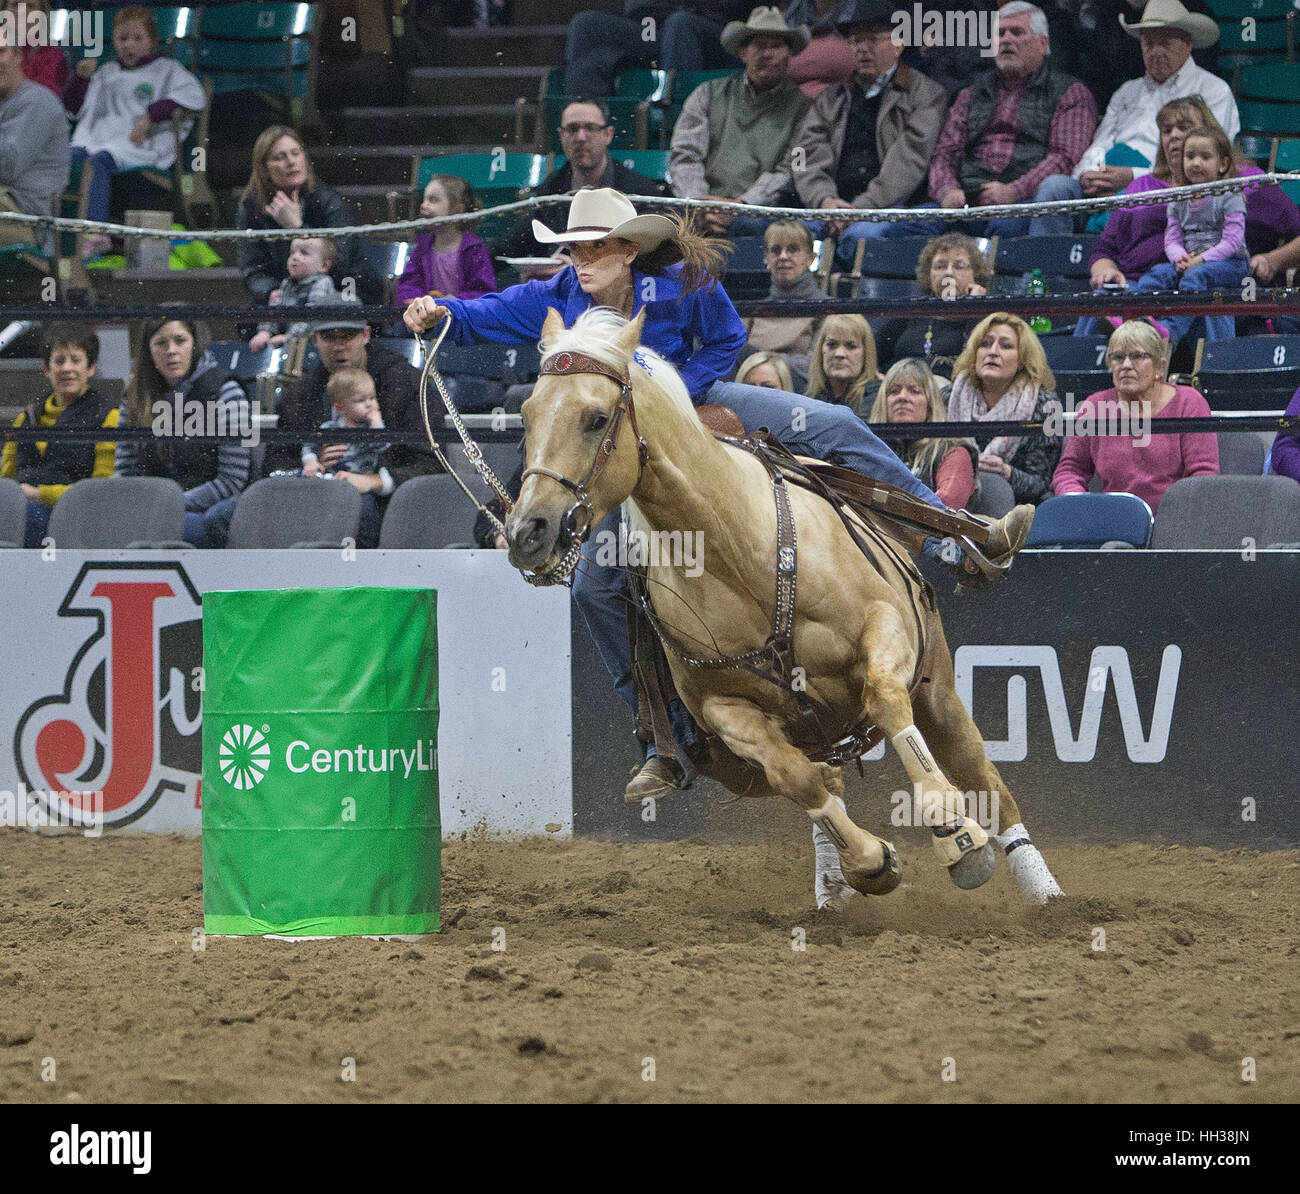 Denver, USA. 16th Jan, 2017. Barrel Racer Kathy Korell-Rach of CO makes her run around the 1st. barrel during the - Stock Image